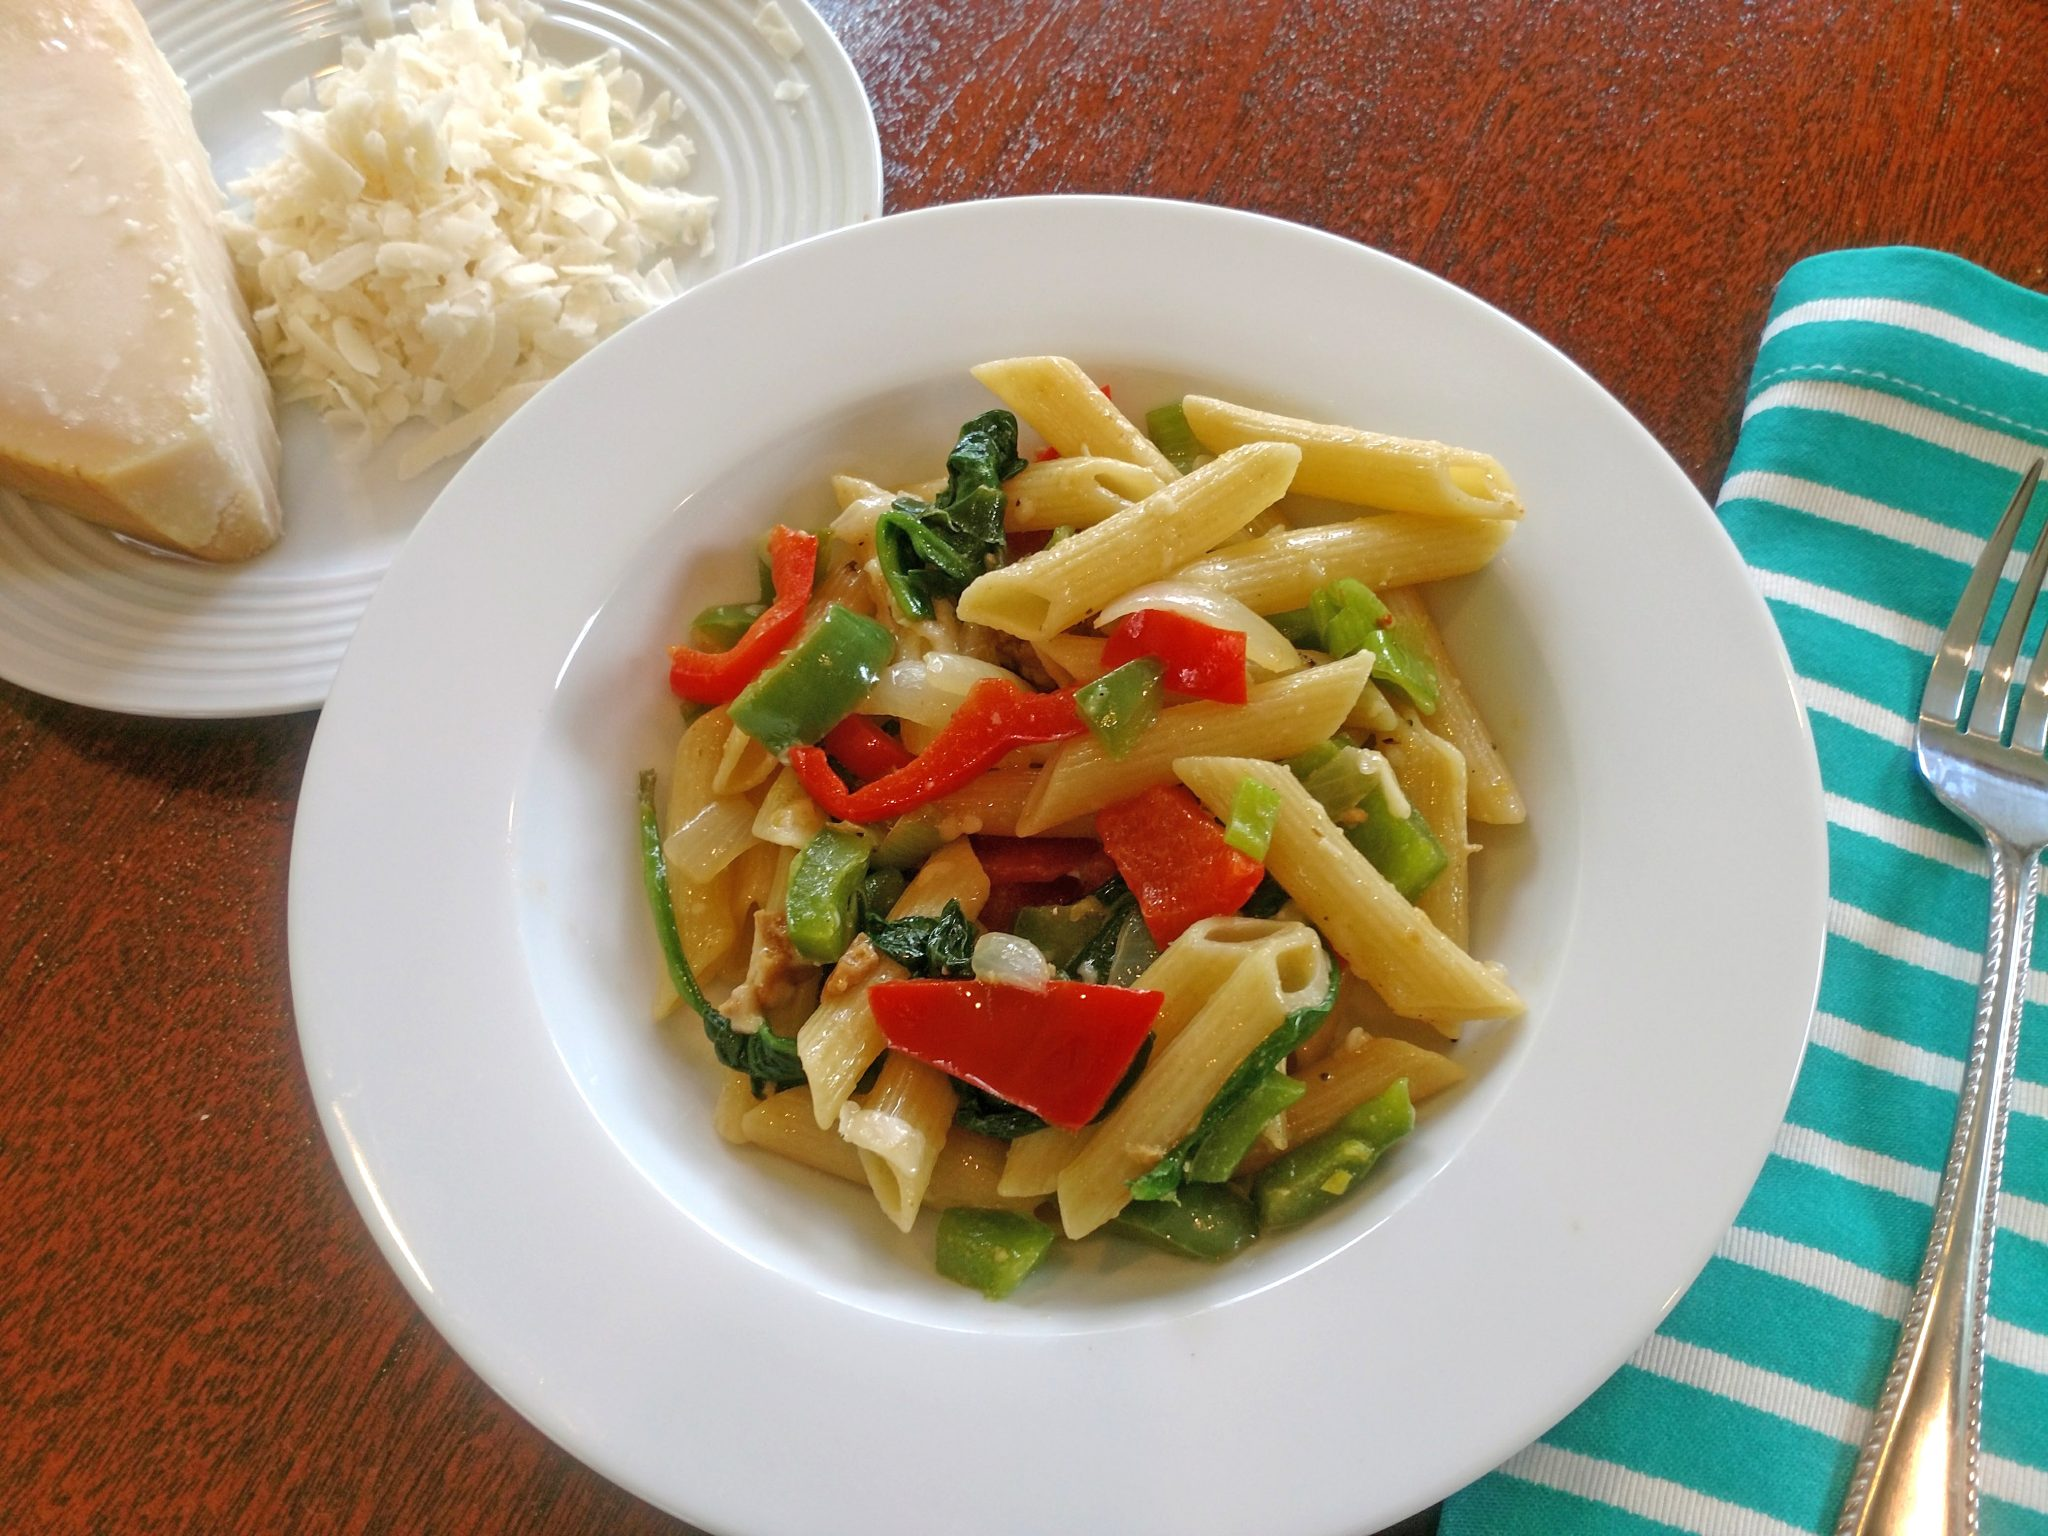 Pepper & Onion Pasta with Parmigiano Reggiano